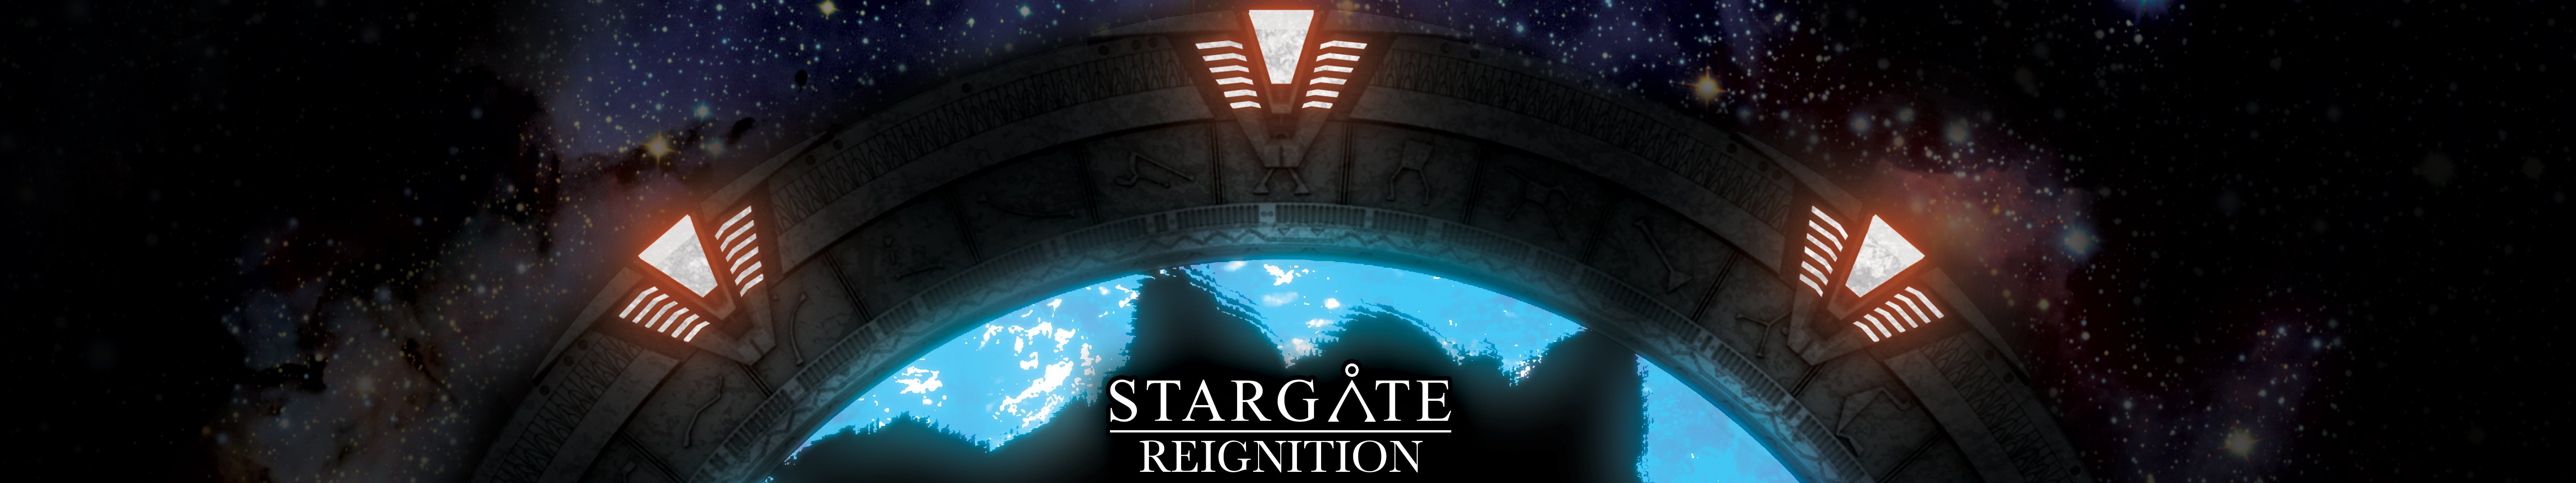 3 monitor wallpapers  photos and desktop backgrounds up to 8K     OC Stargate for 3 monitor Displays wallpaper